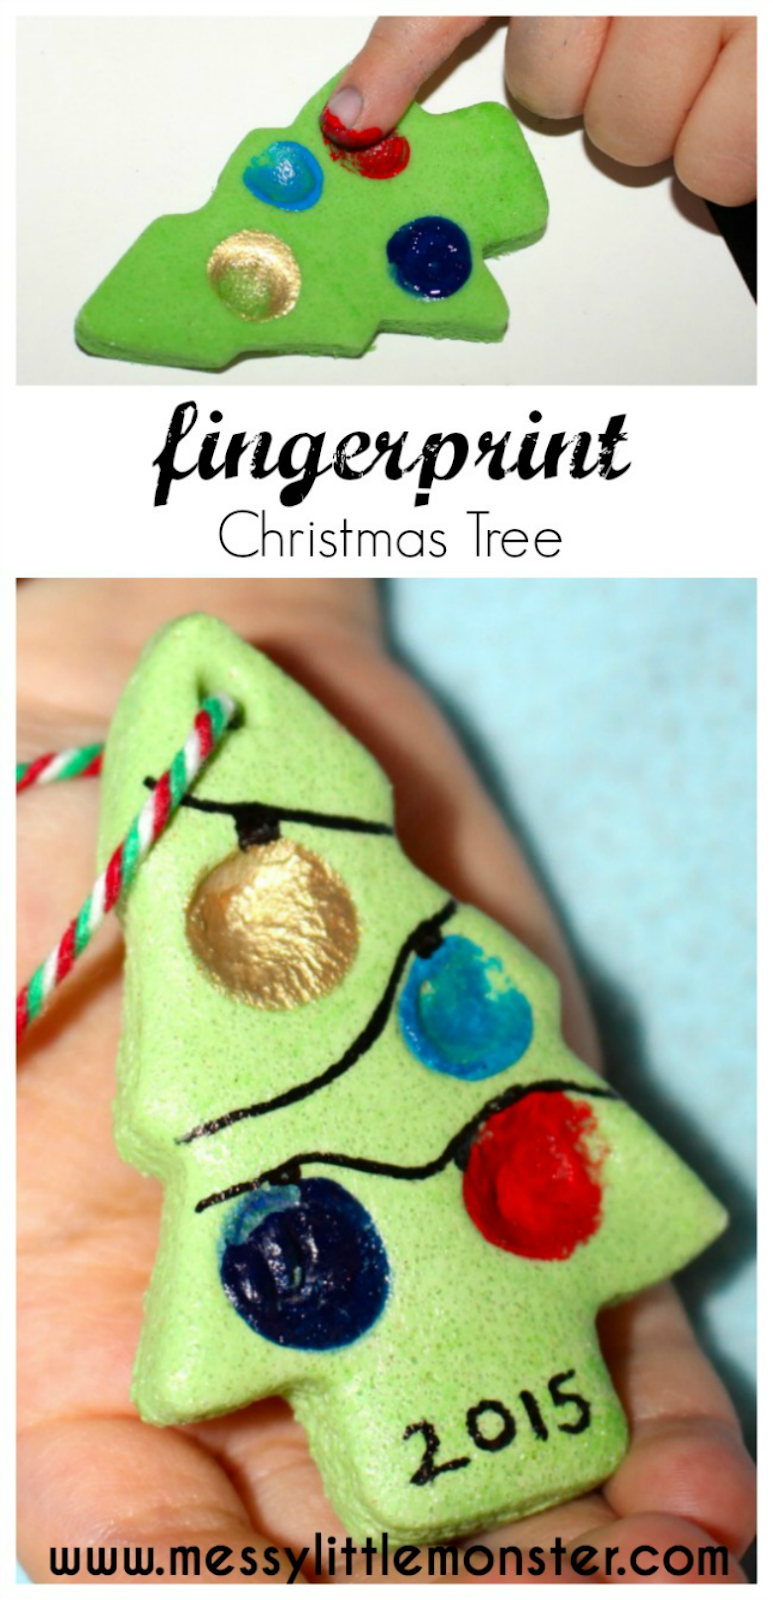 Fingerprint salt dough ornaments and coloured salt dough ornament recipe. Fingerprint christmas tree crafts for kids. Easy salt dough crafts. Personalized Christmas ornament for toddlers and preschoolers to make.